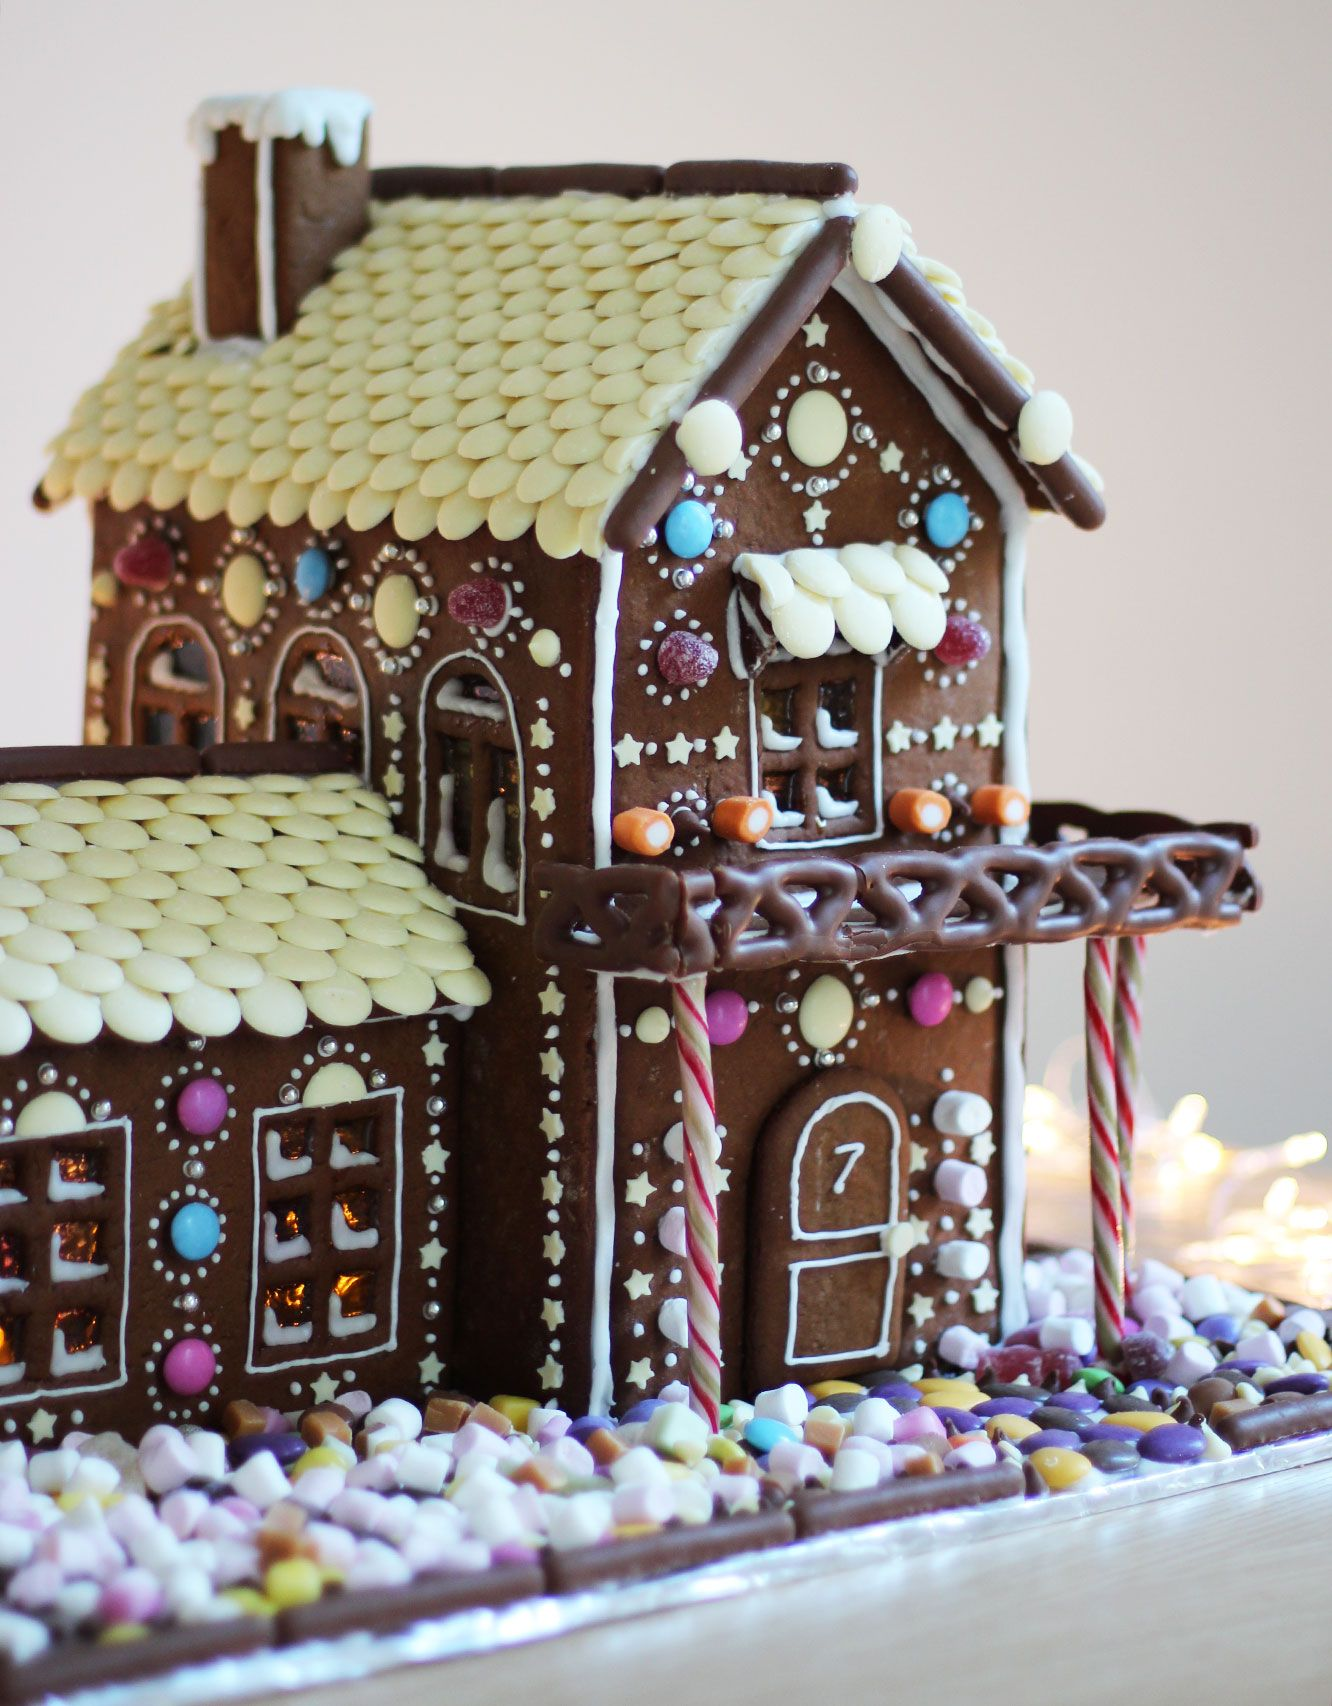 Gingerbread house inspiration with links to recipe, how to